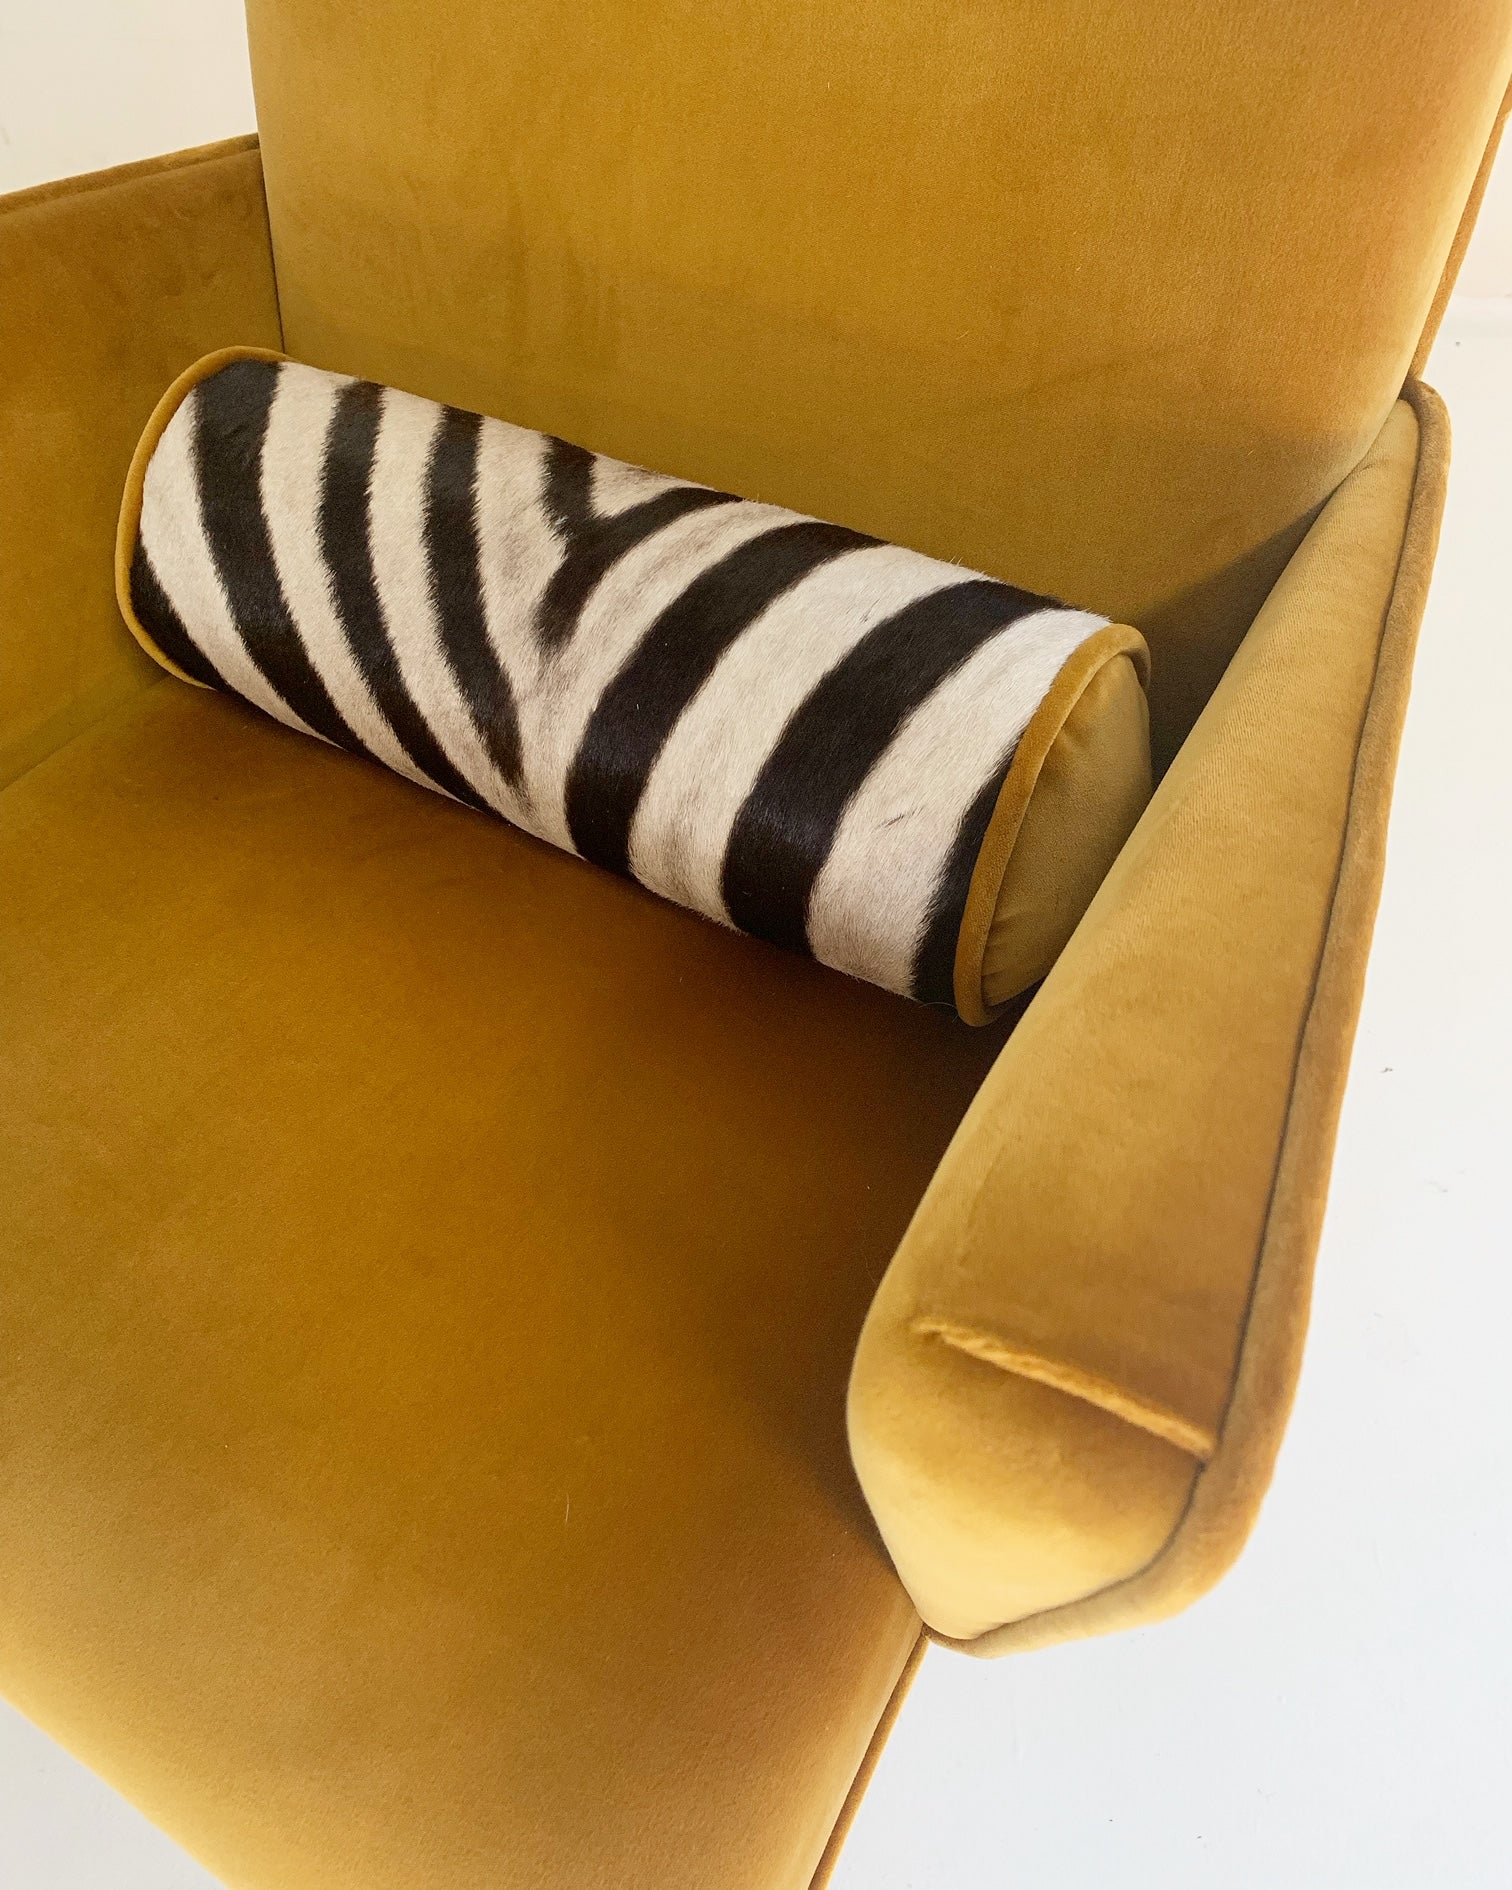 Mexican Modernist Chairs in Loro Piana Velvet and Zebra Hide, pair - FORSYTH